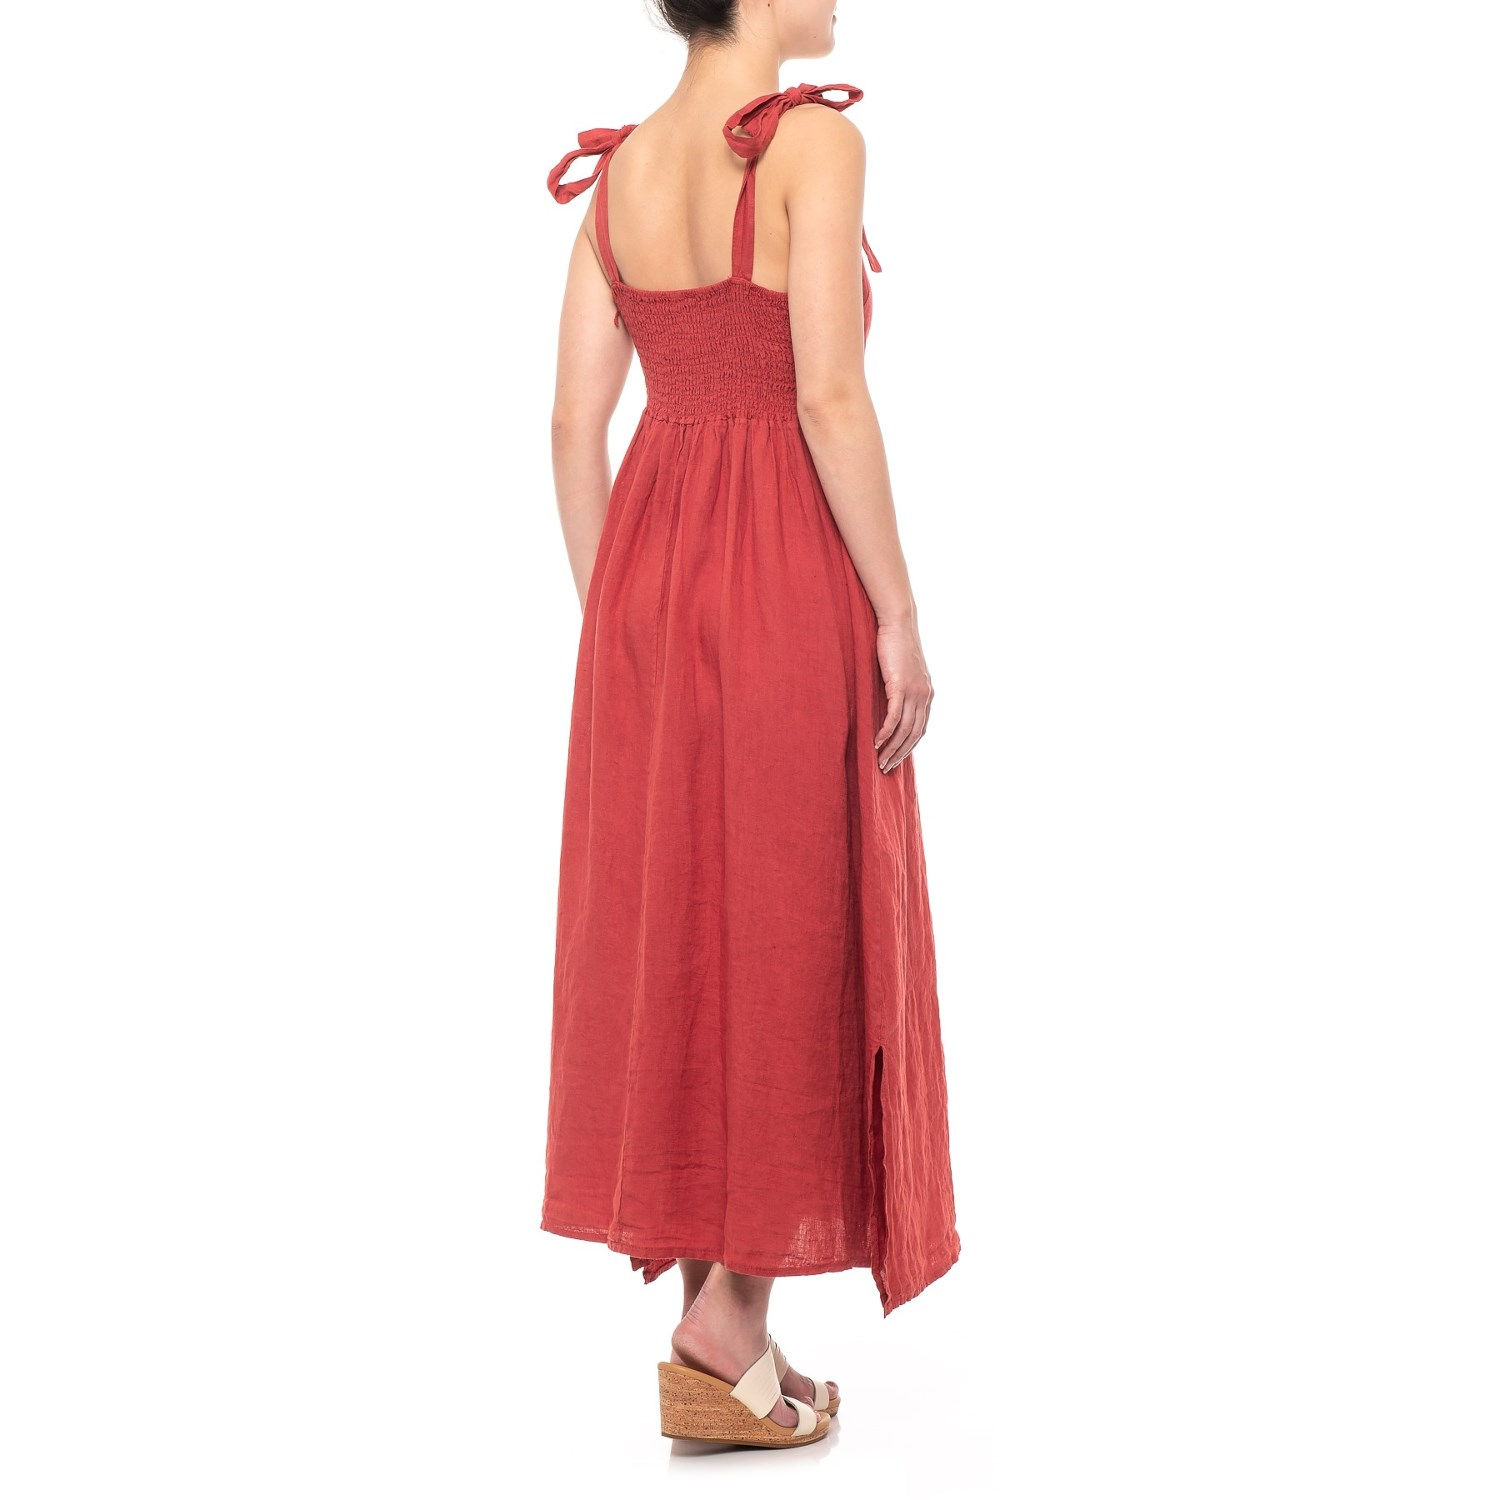 2596f55e0c5547 Francesca Bettini Made in Italy Brick Shoulder Tie Midi Dress (For ...